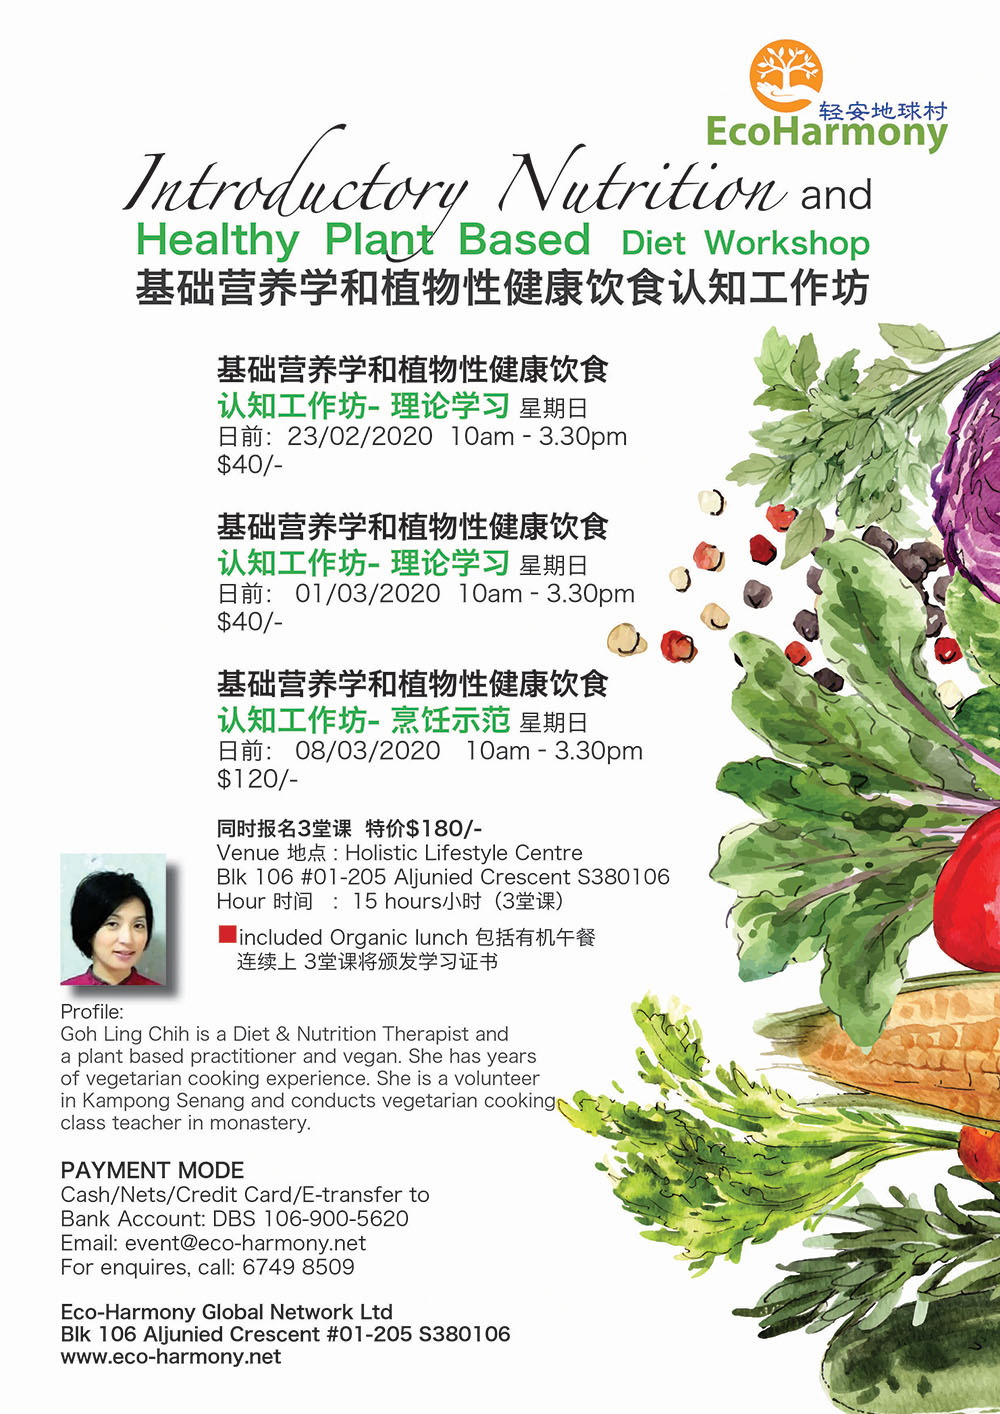 Introductory Nutrition & Healthy Plant Based Diet Workshop